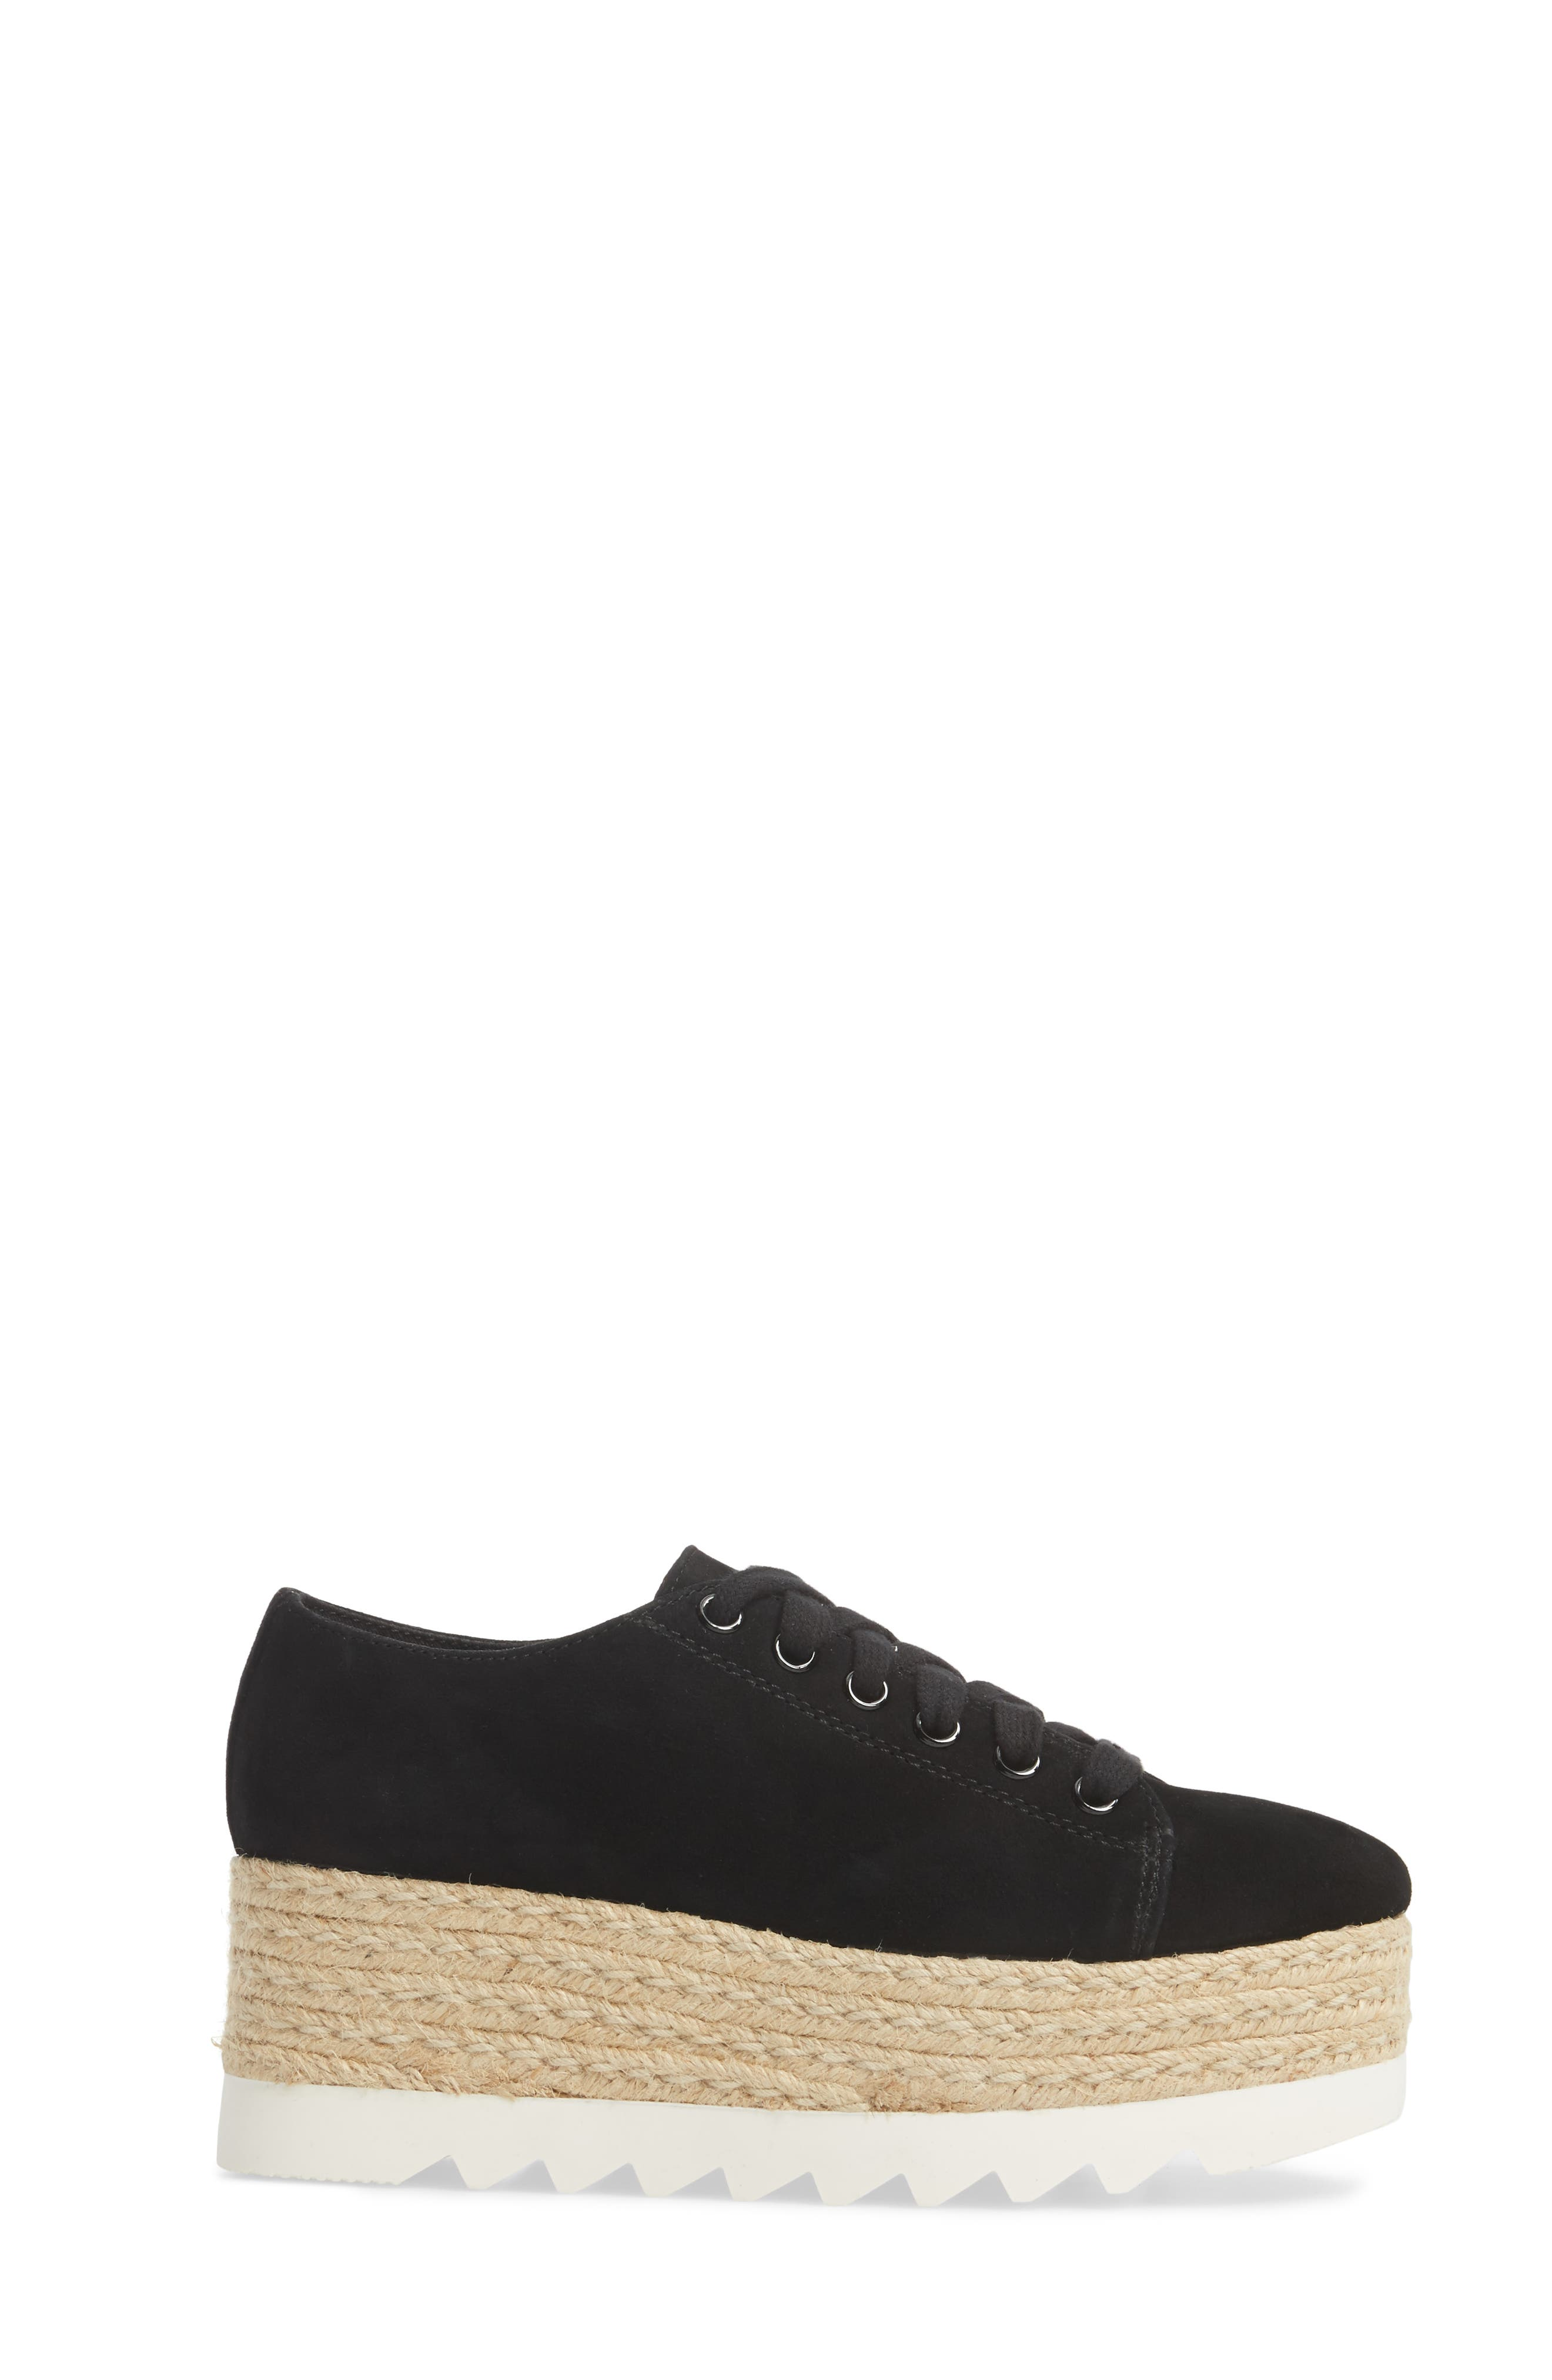 Karma Espadrille Platform Sneaker,                             Alternate thumbnail 3, color,                             Black Sued